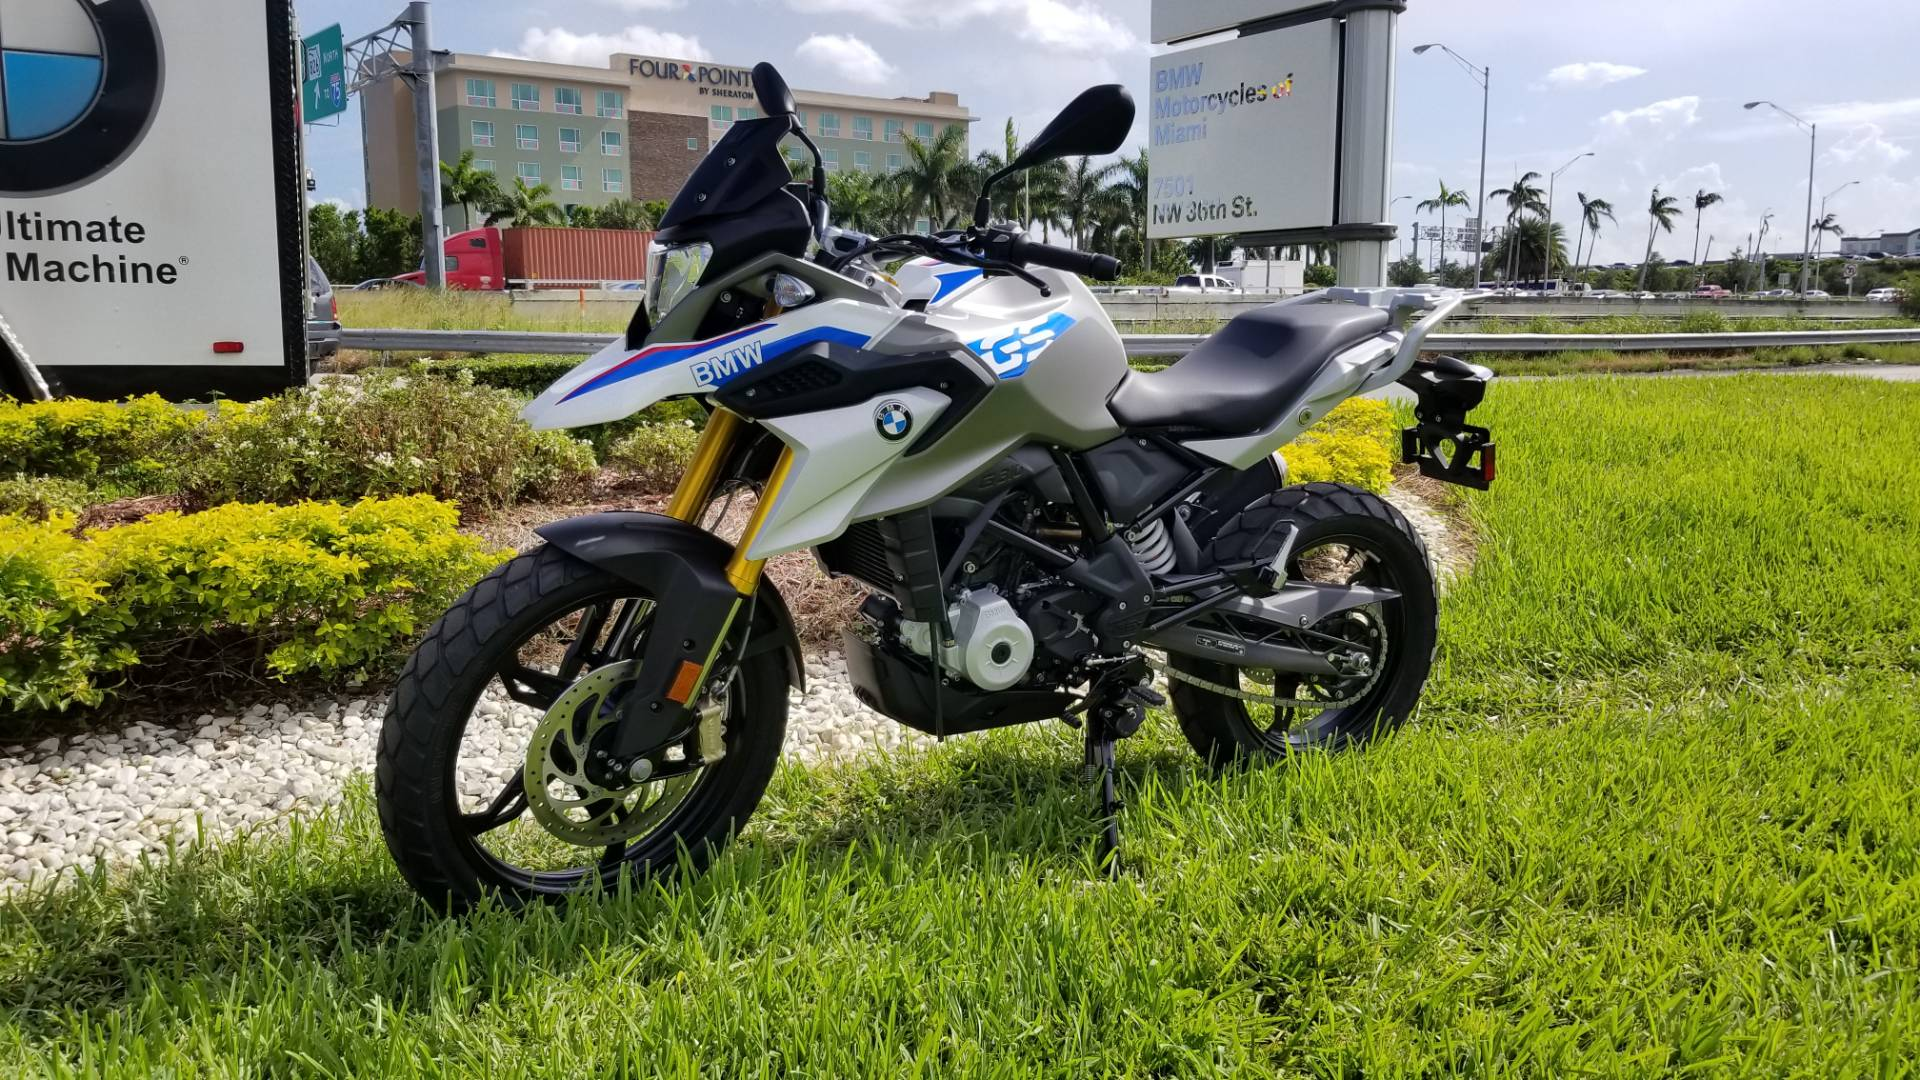 New 2019 BMW G 310 GS for sale, BMW G 310GS for sale, BMW Motorcycle G310GS, new BMW 310, Dual, BMW. BMW Motorcycles of Miami, Motorcycles of Miami, Motorcycles Miami, New Motorcycles, Used Motorcycles, pre-owned. #BMWMotorcyclesOfMiami #MotorcyclesOfMiami - Photo 4